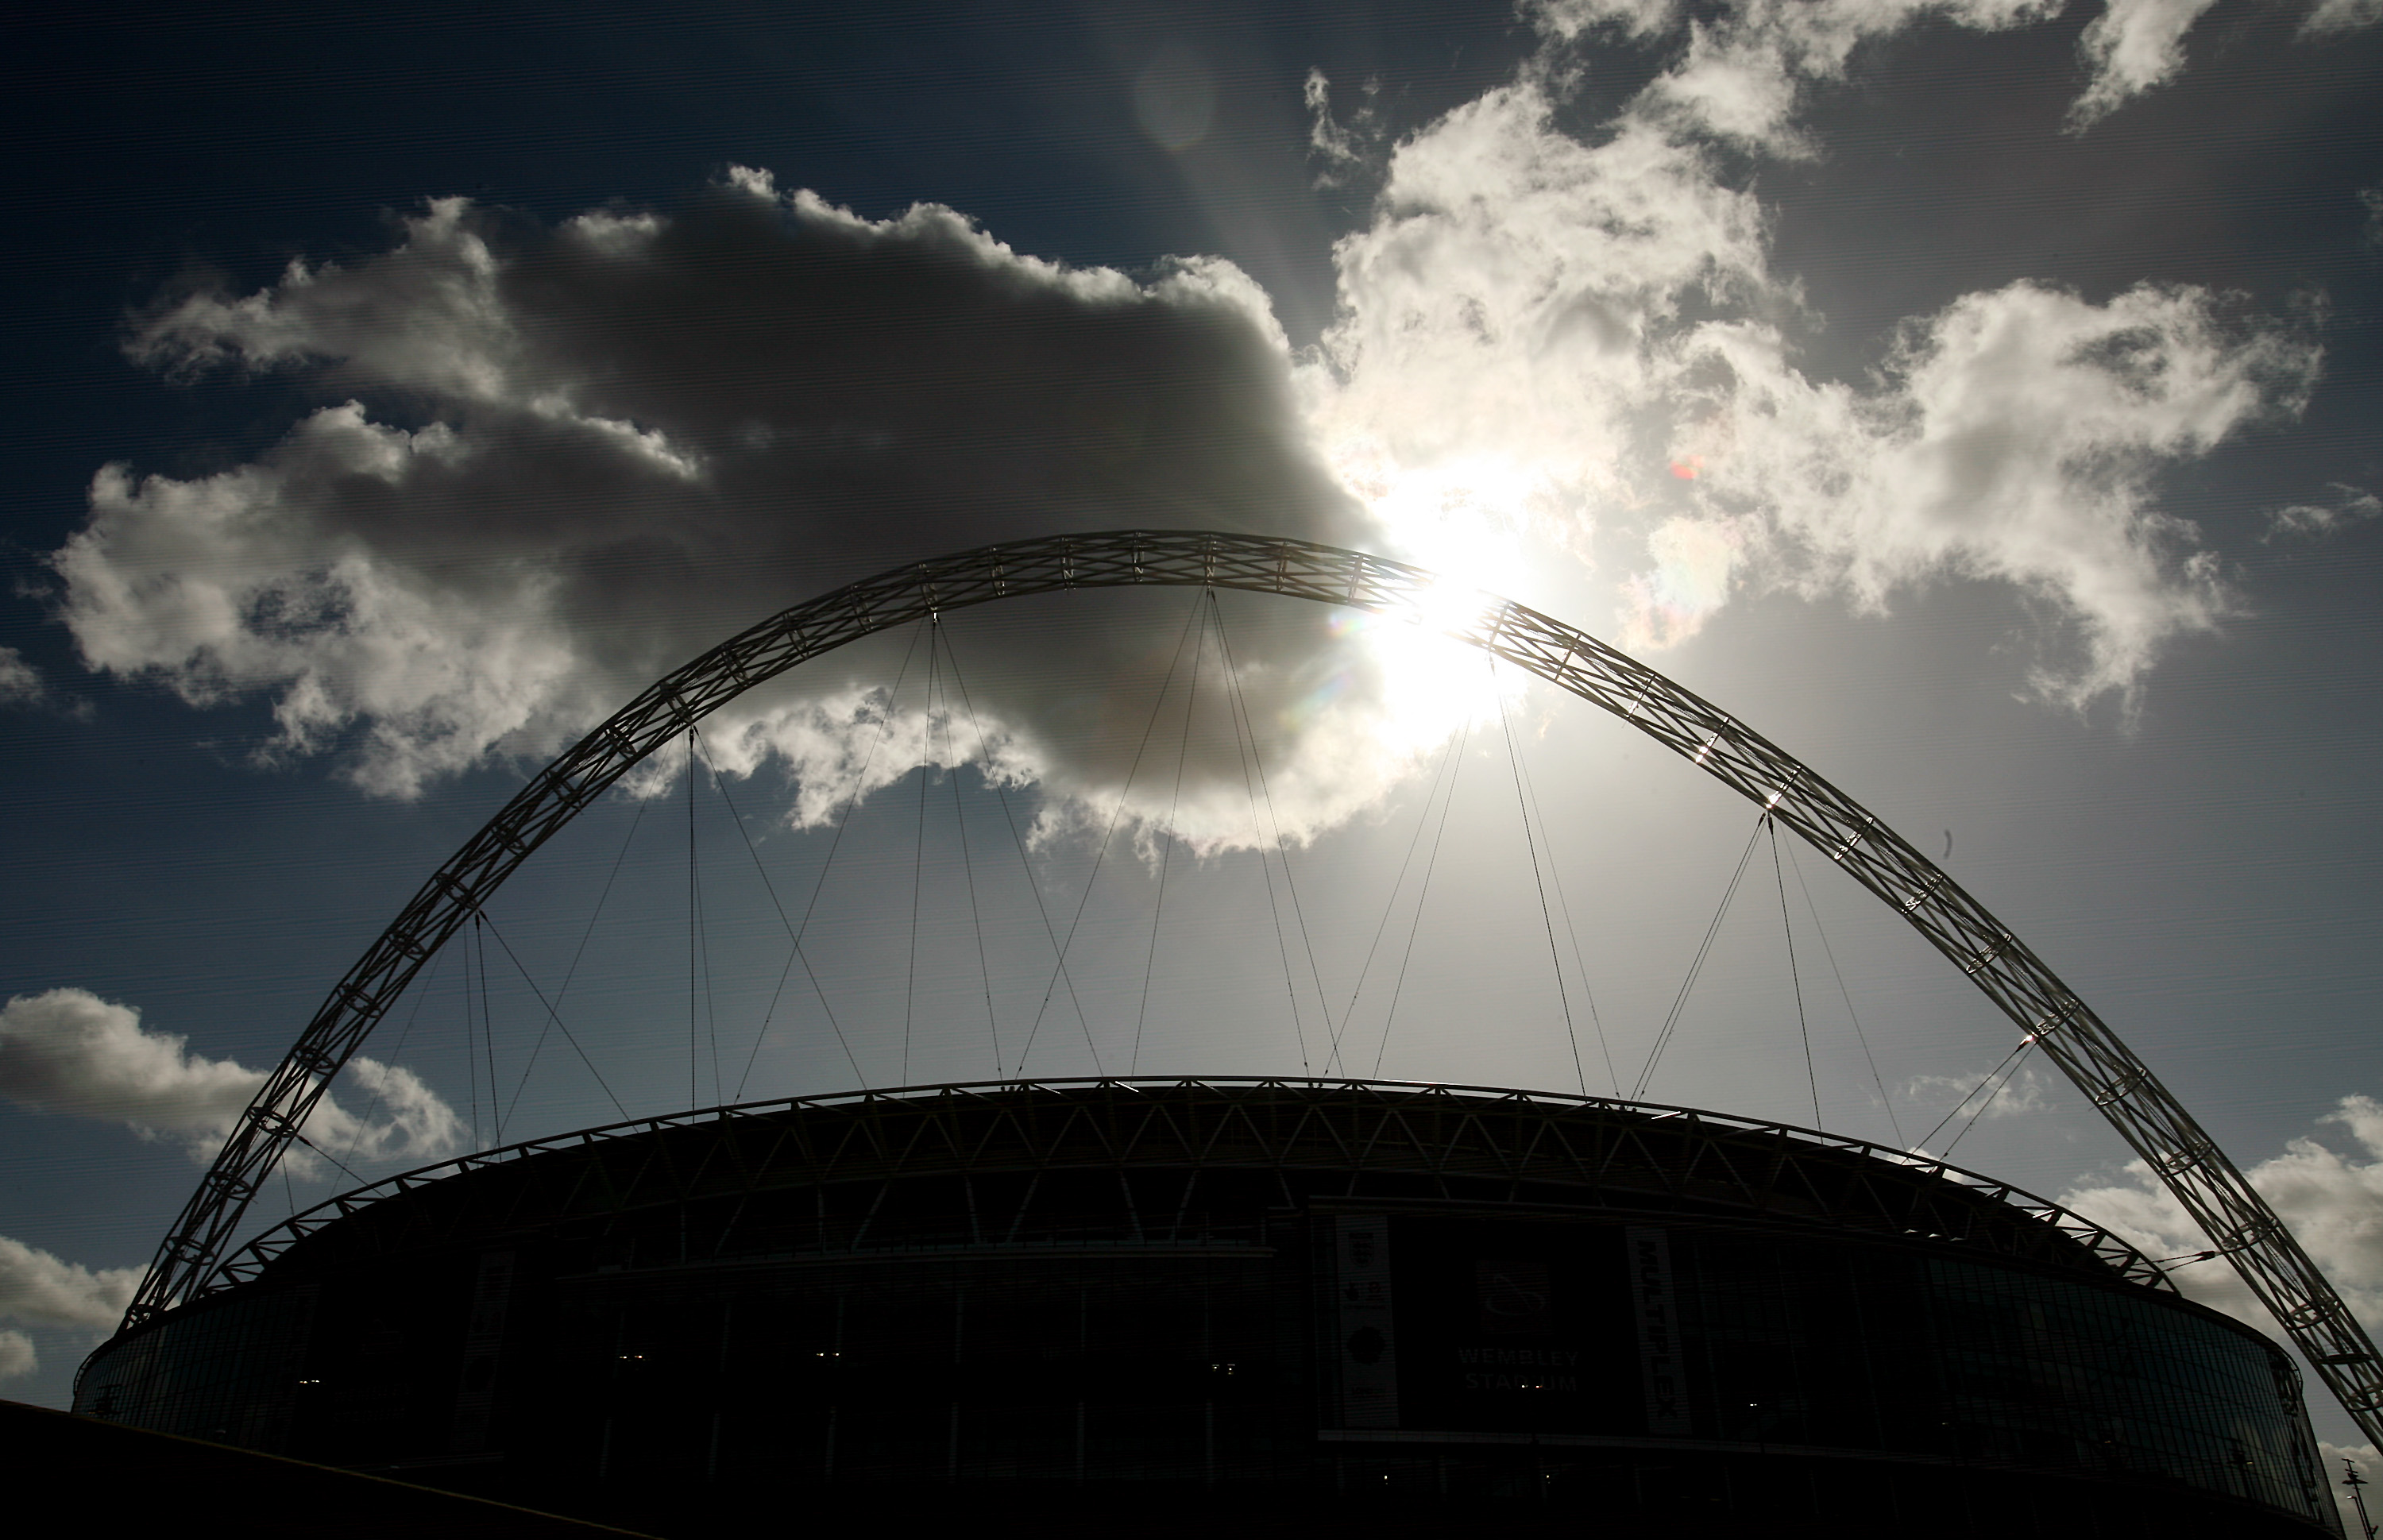 Fulham's chances of playing here are slim and getting slimmer